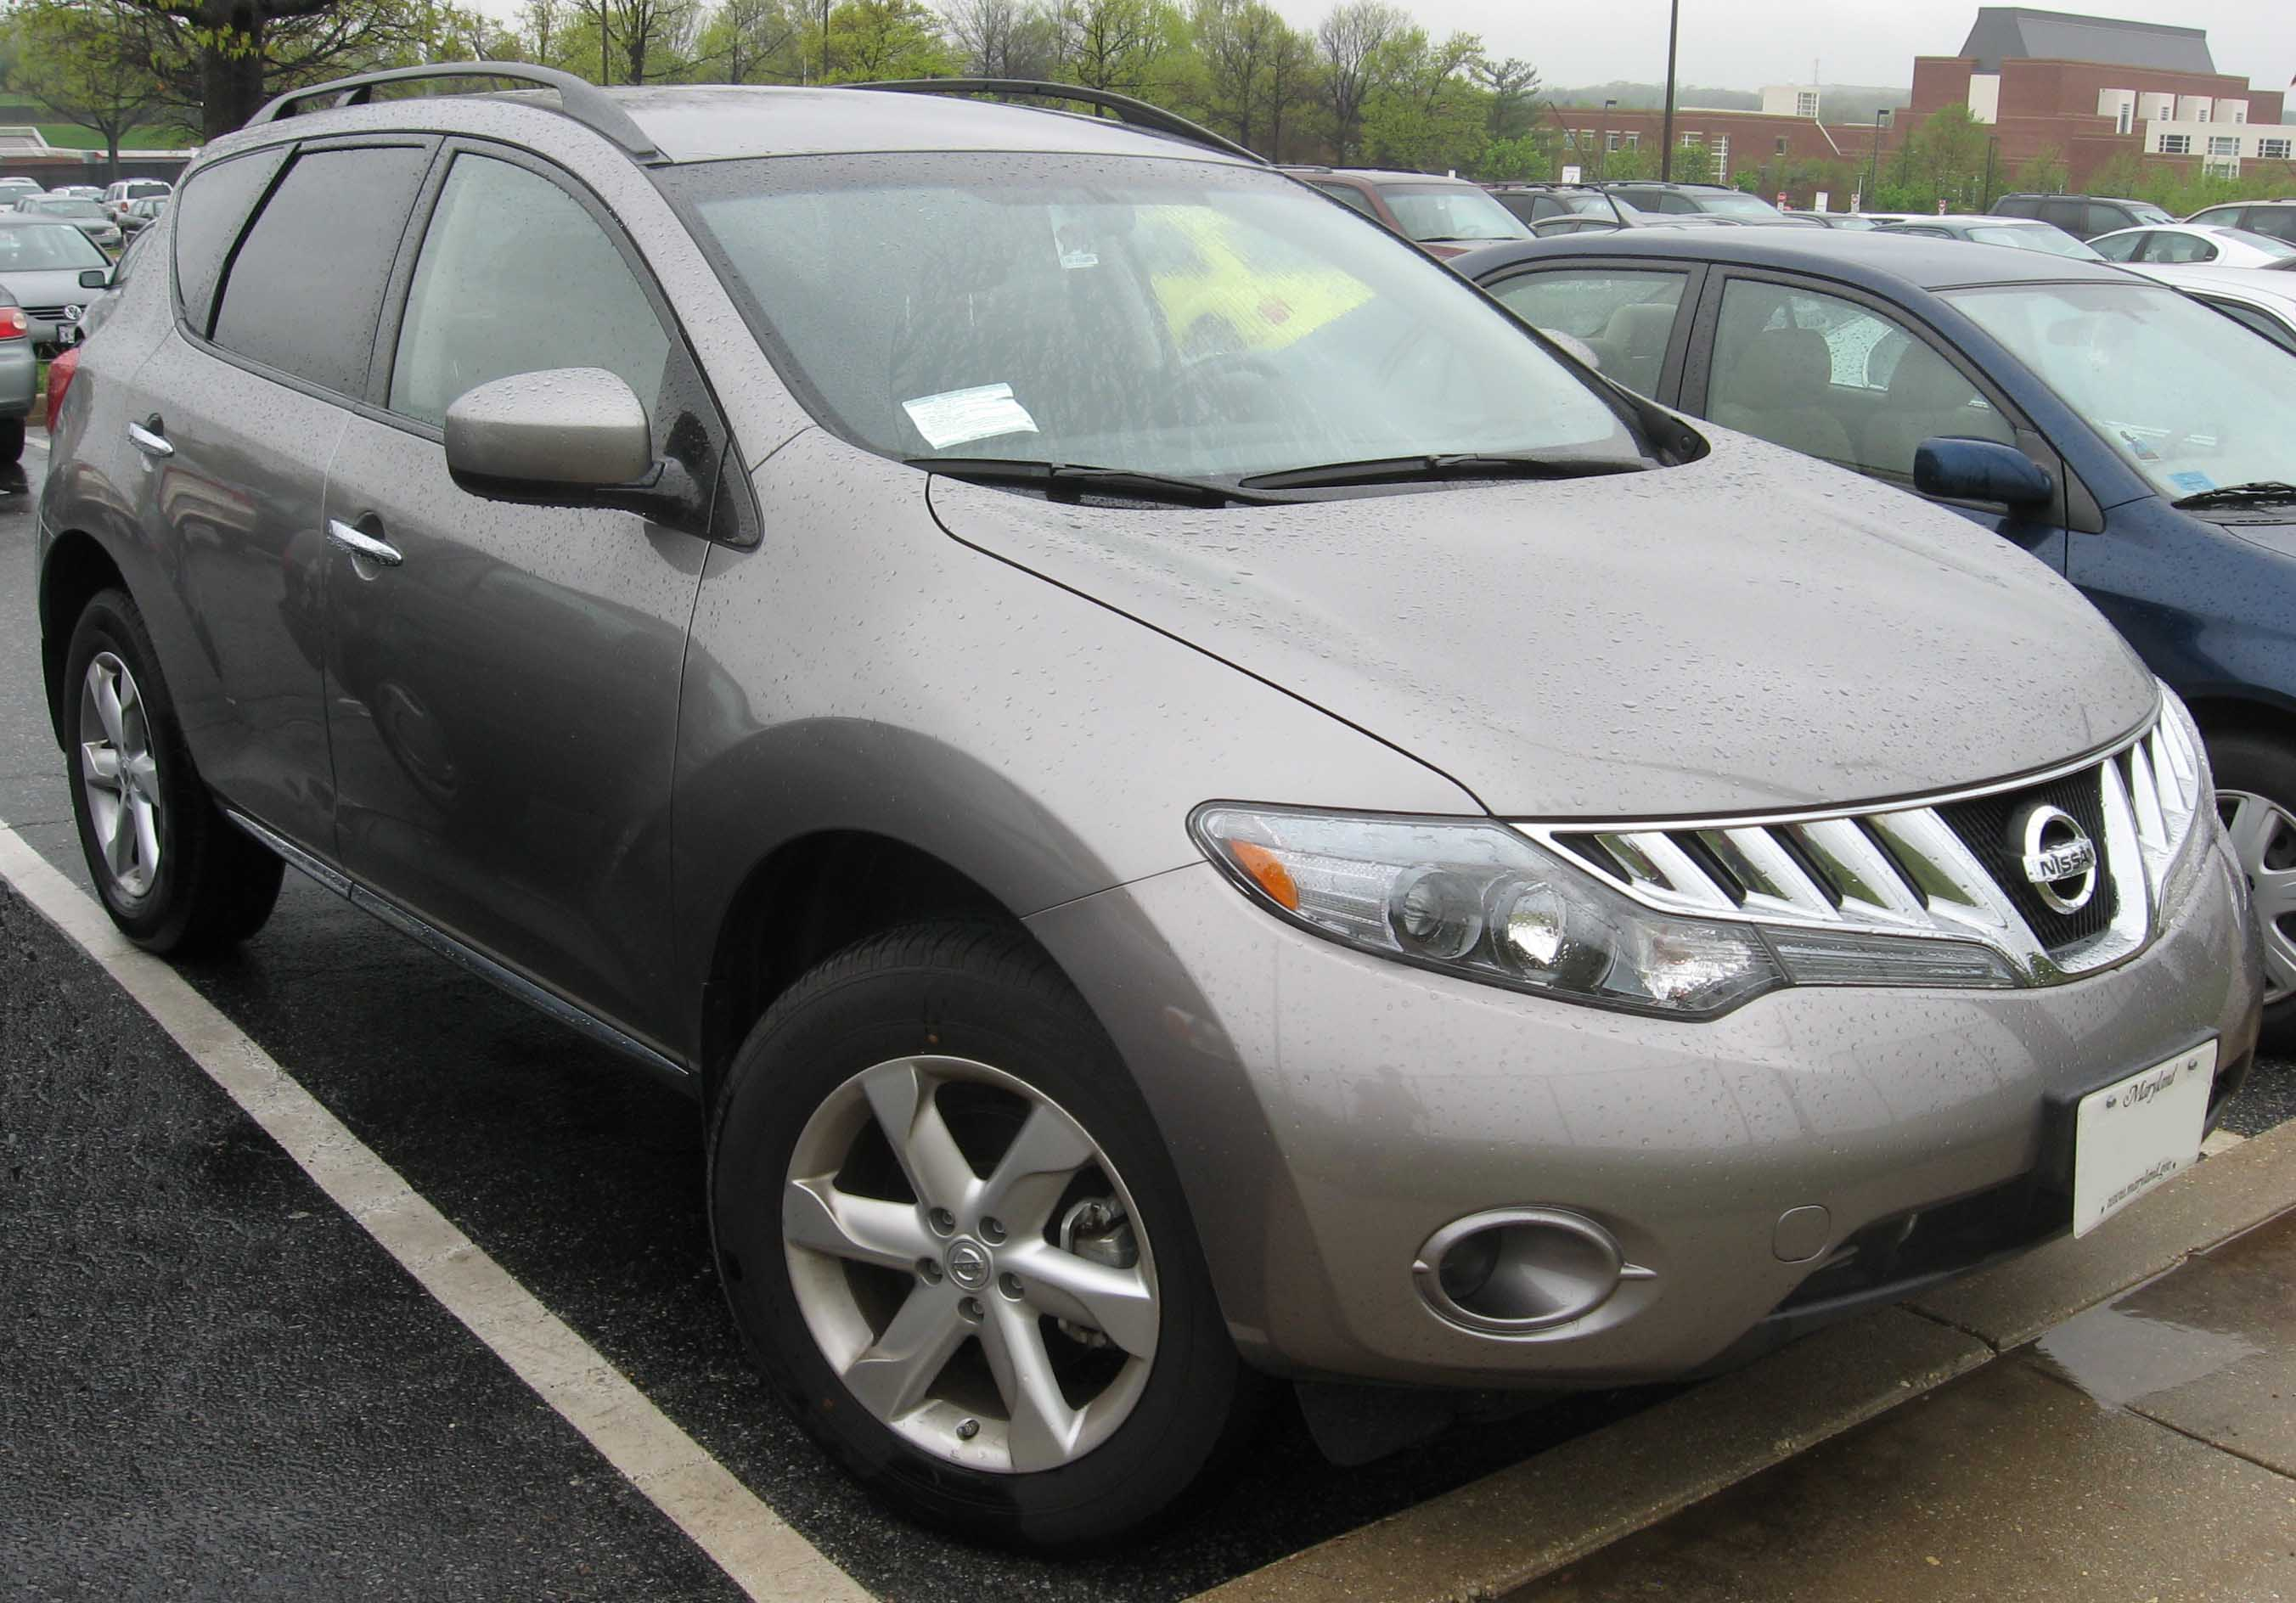 File2009 nissan murano sg wikimedia commons file2009 nissan murano sg vanachro Image collections